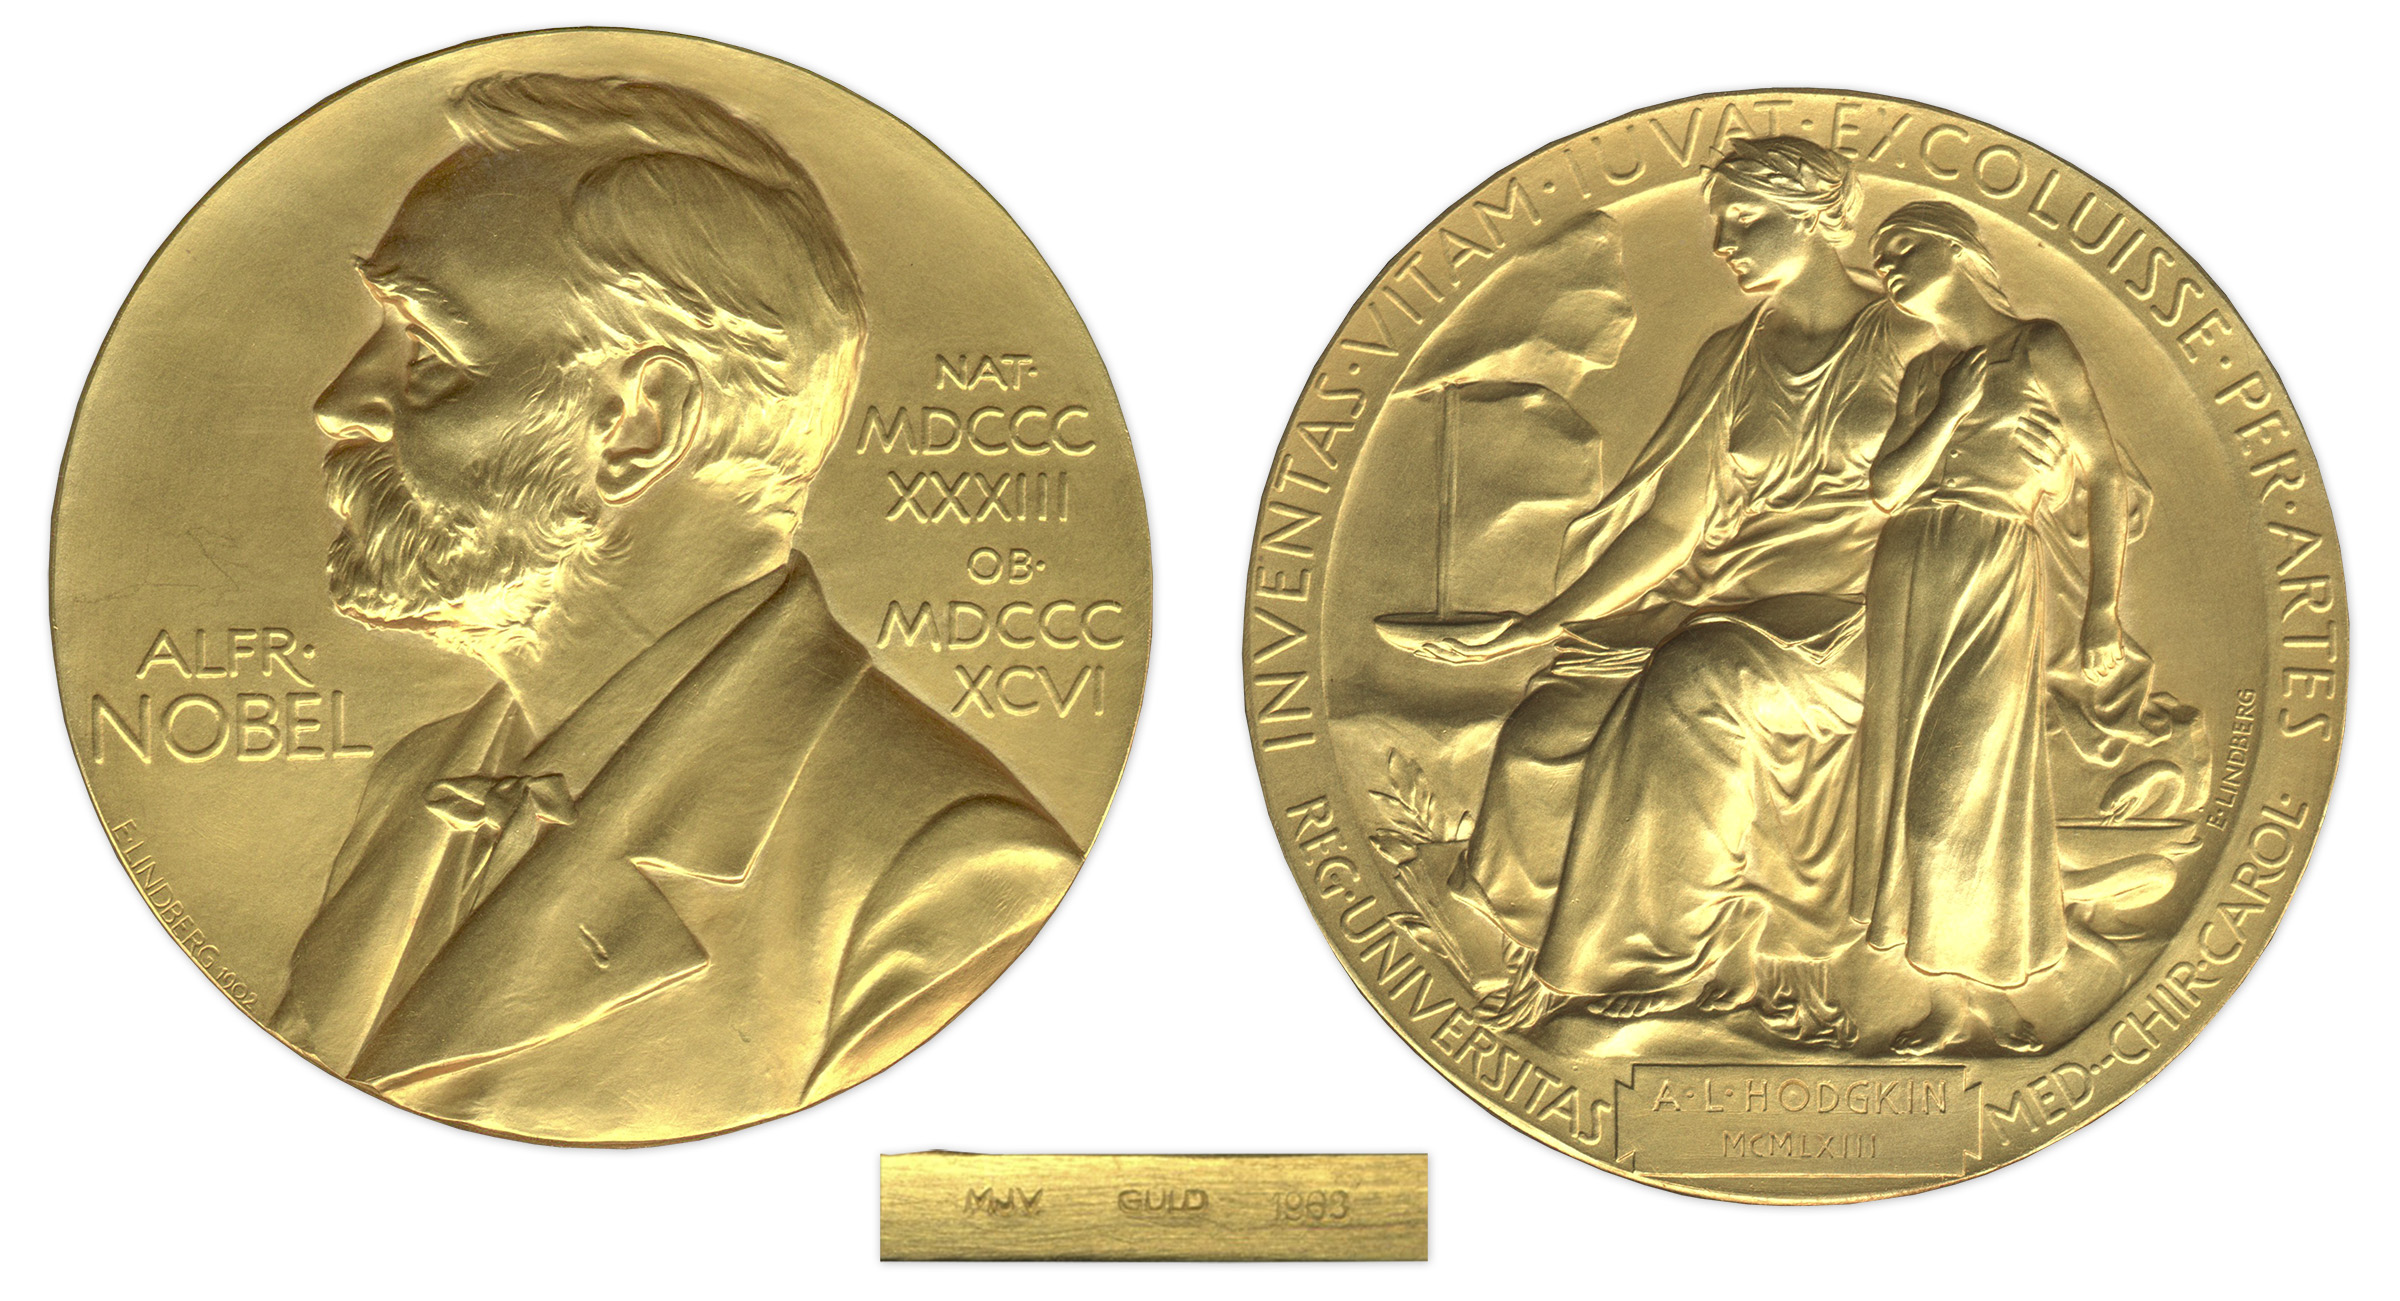 lot detail nobel prize awarded to physiologist alan lloyd  nobel prize awarded to physiologist alan lloyd hodgkin in 1963 won for his revolutionary